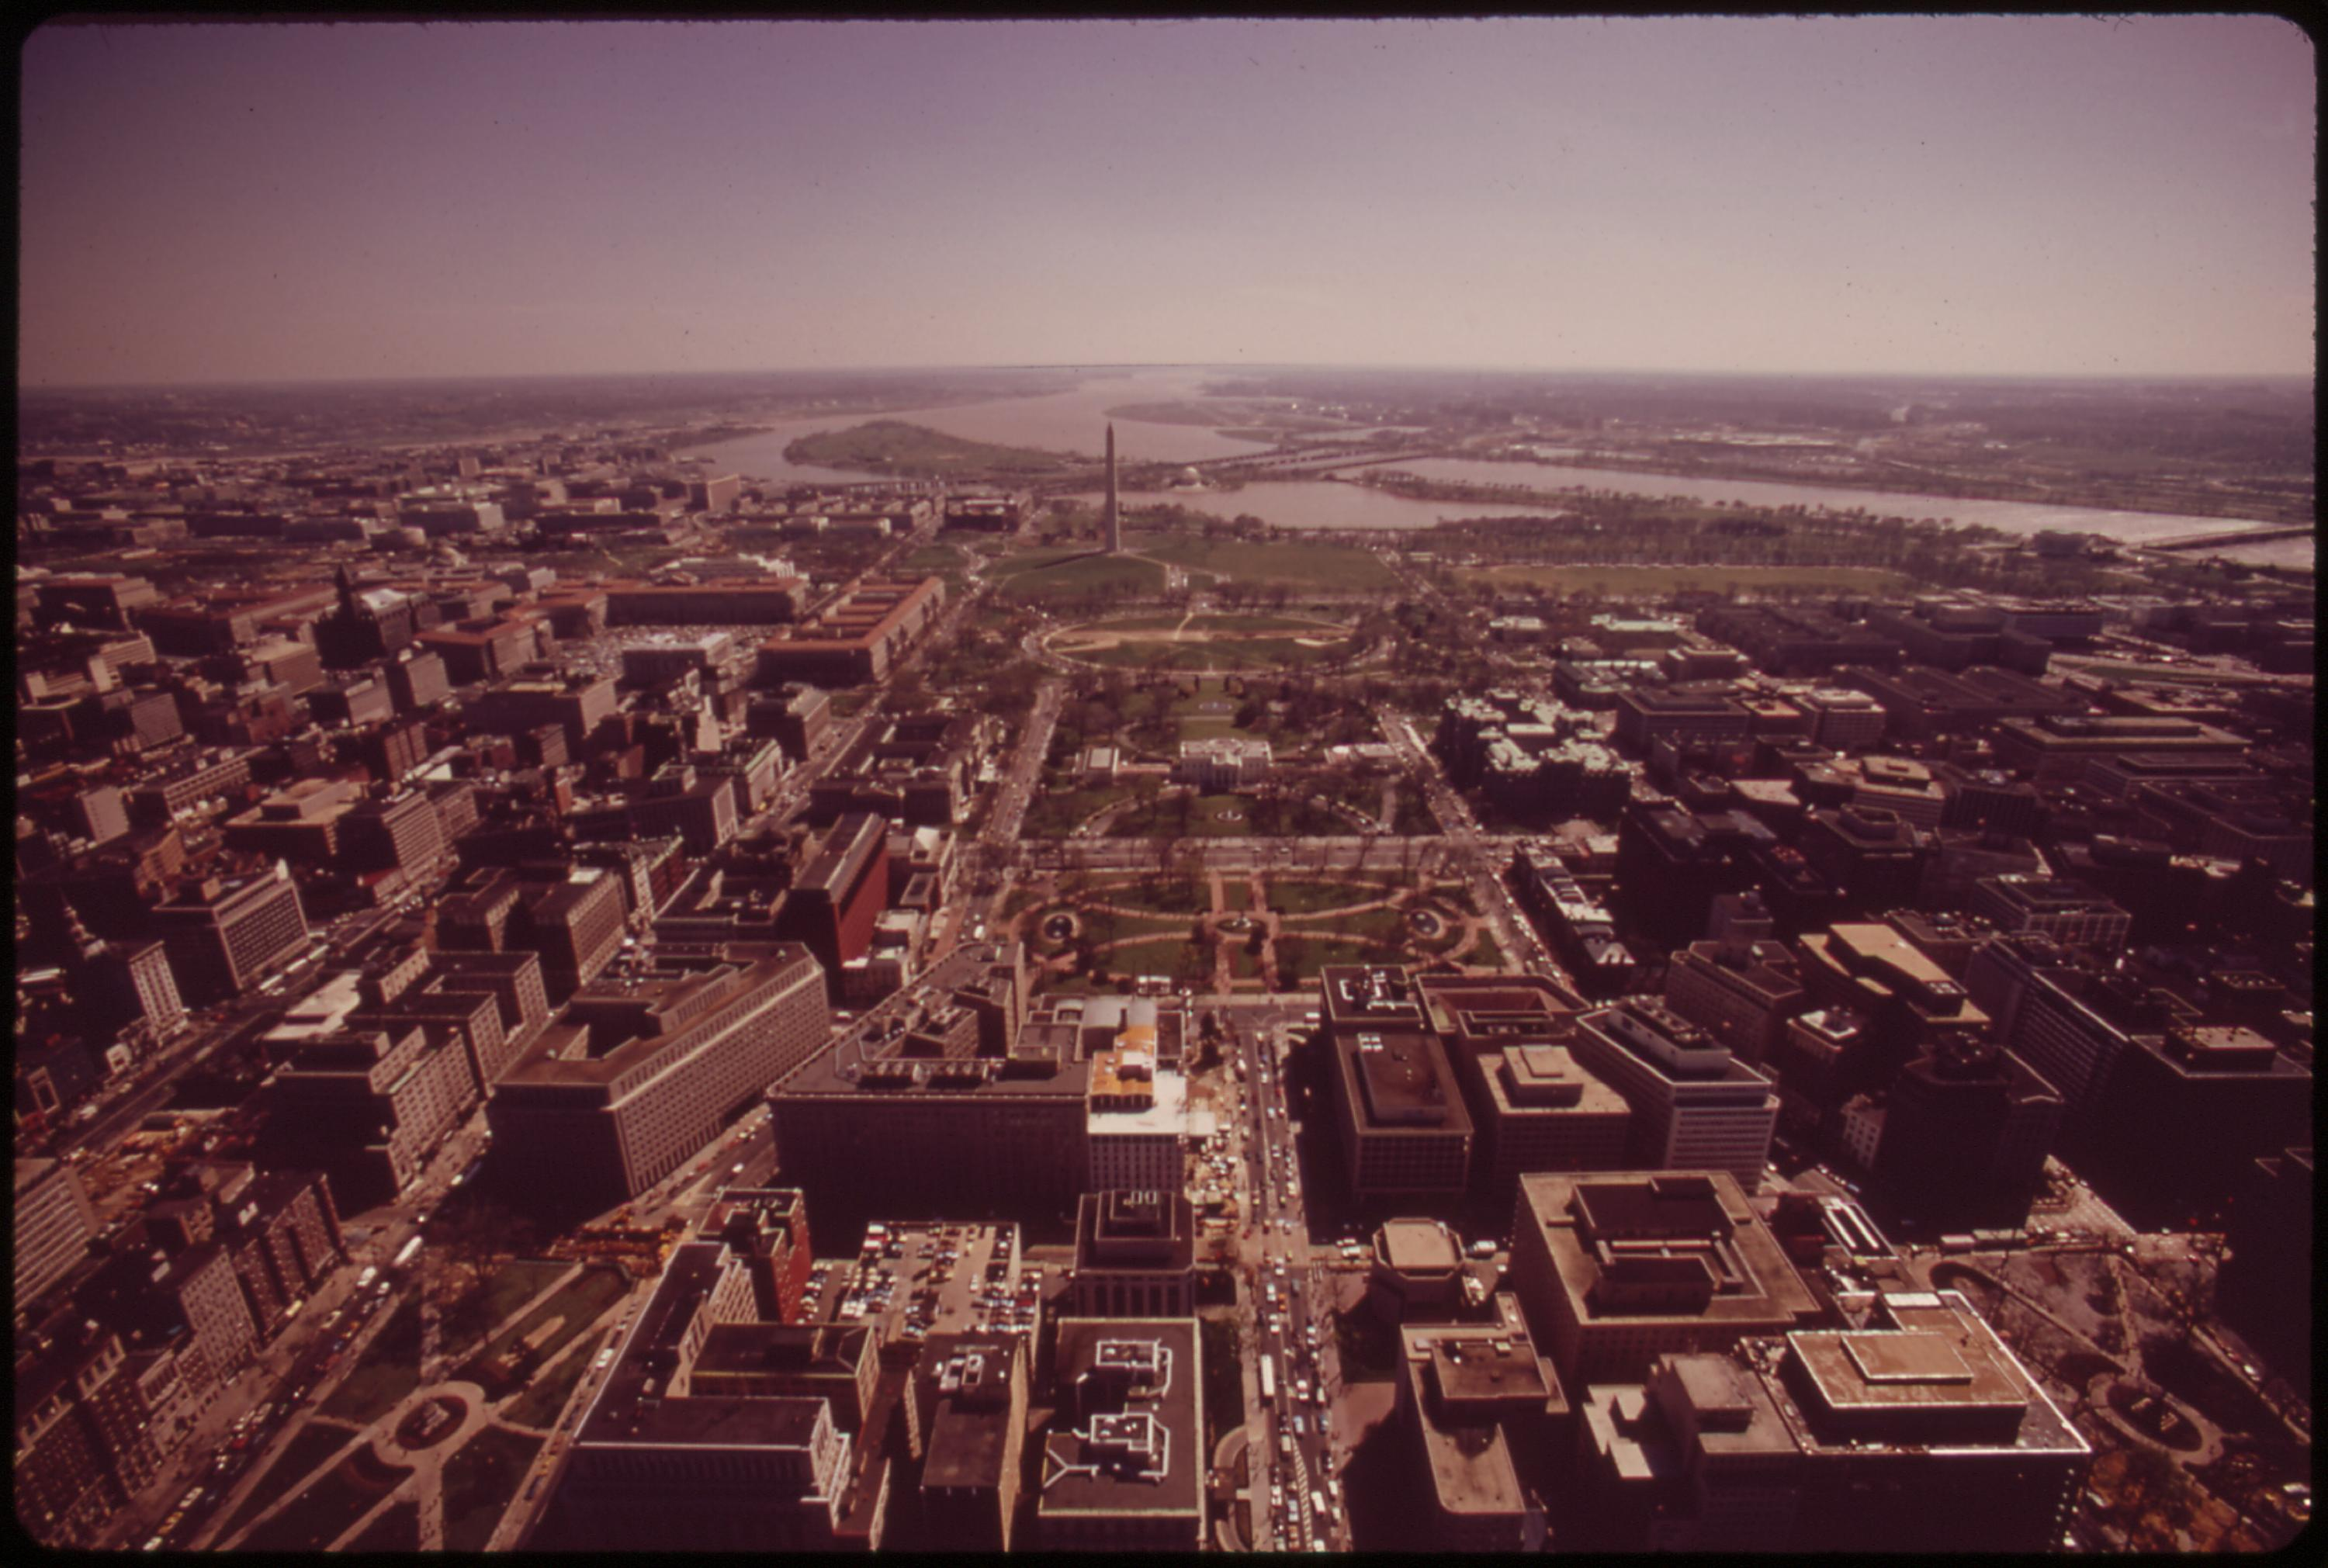 Washington, D.C. in 1973